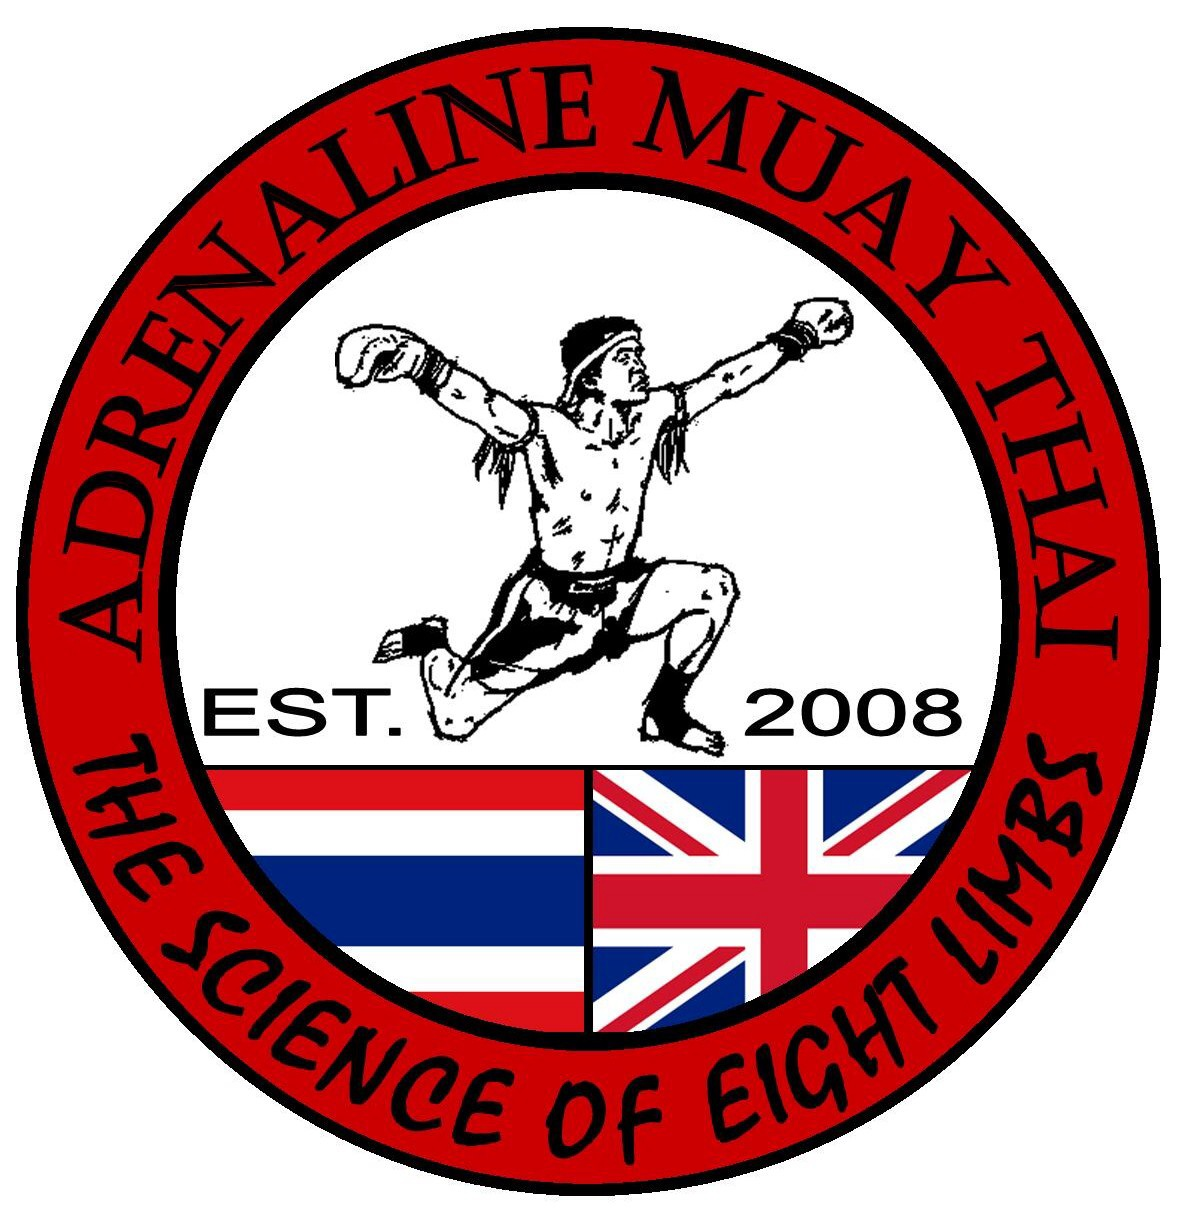 Adrenaline Muay Thai Boxing - Martial Arts Classes in Grimsby